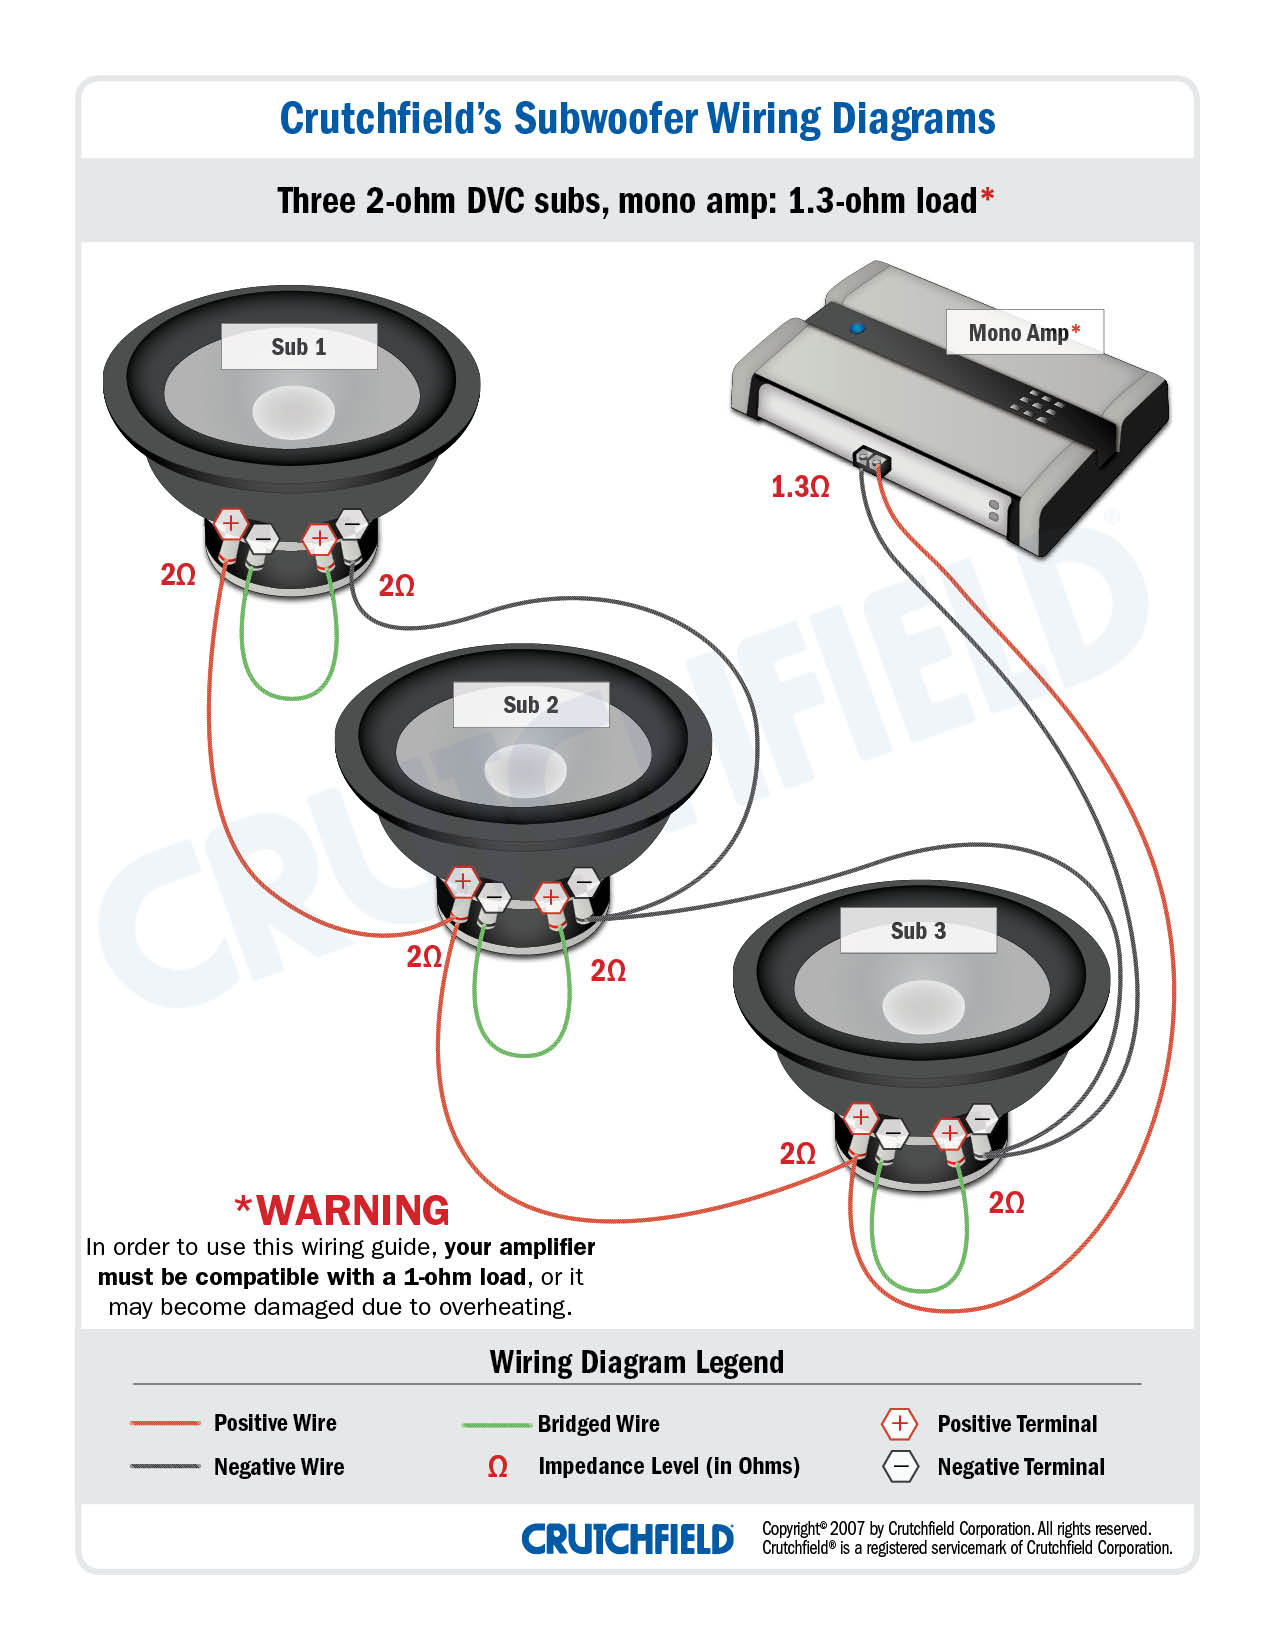 Ron, Three DVC 2-ohm subs get wired to a mono amp capable of driving a  1-ohm load ...